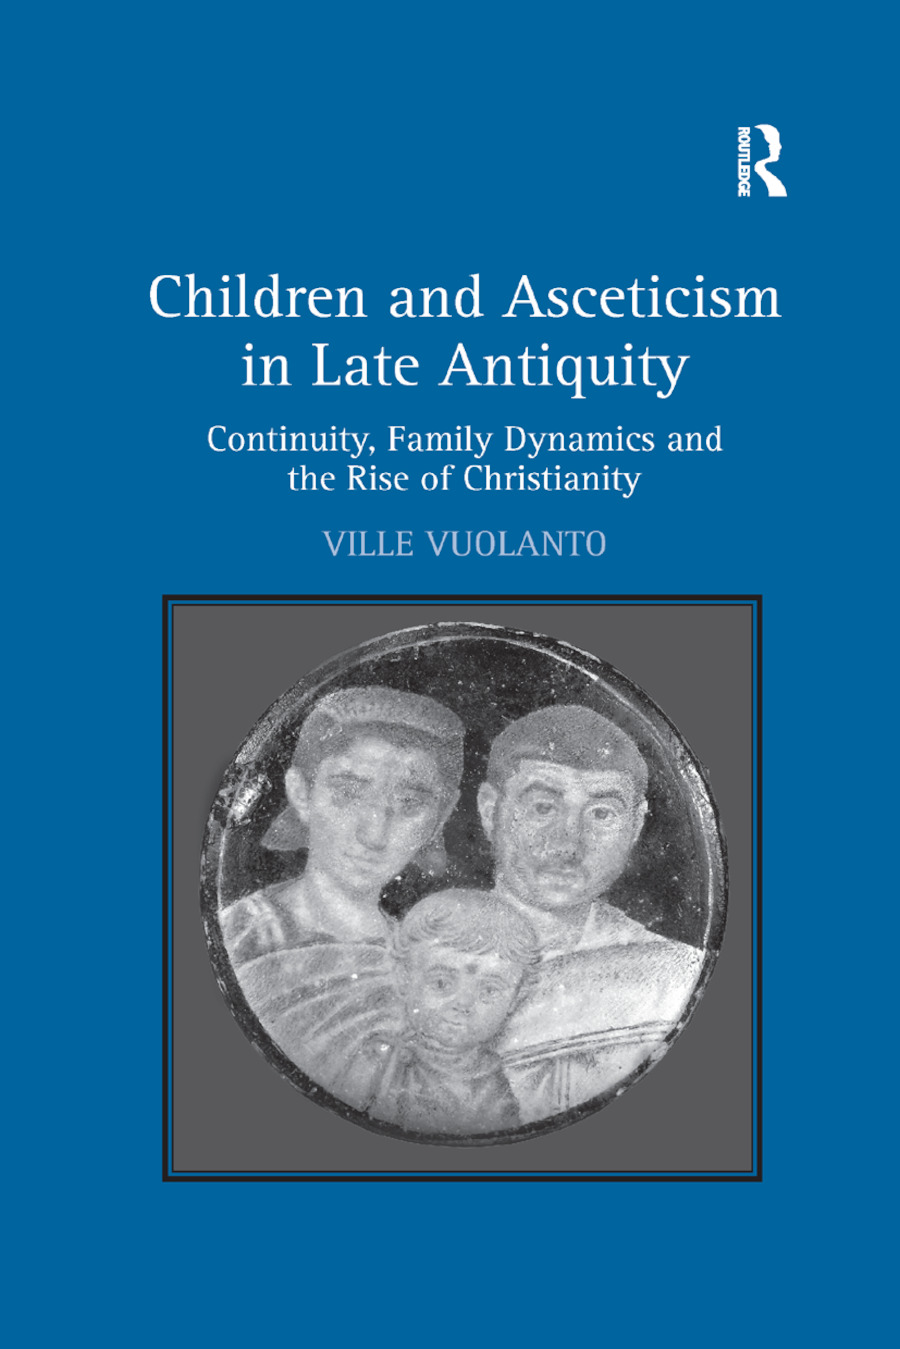 Children and Asceticism in Late Antiquity: Continuity, Family Dynamics and the Rise of Christianity book cover